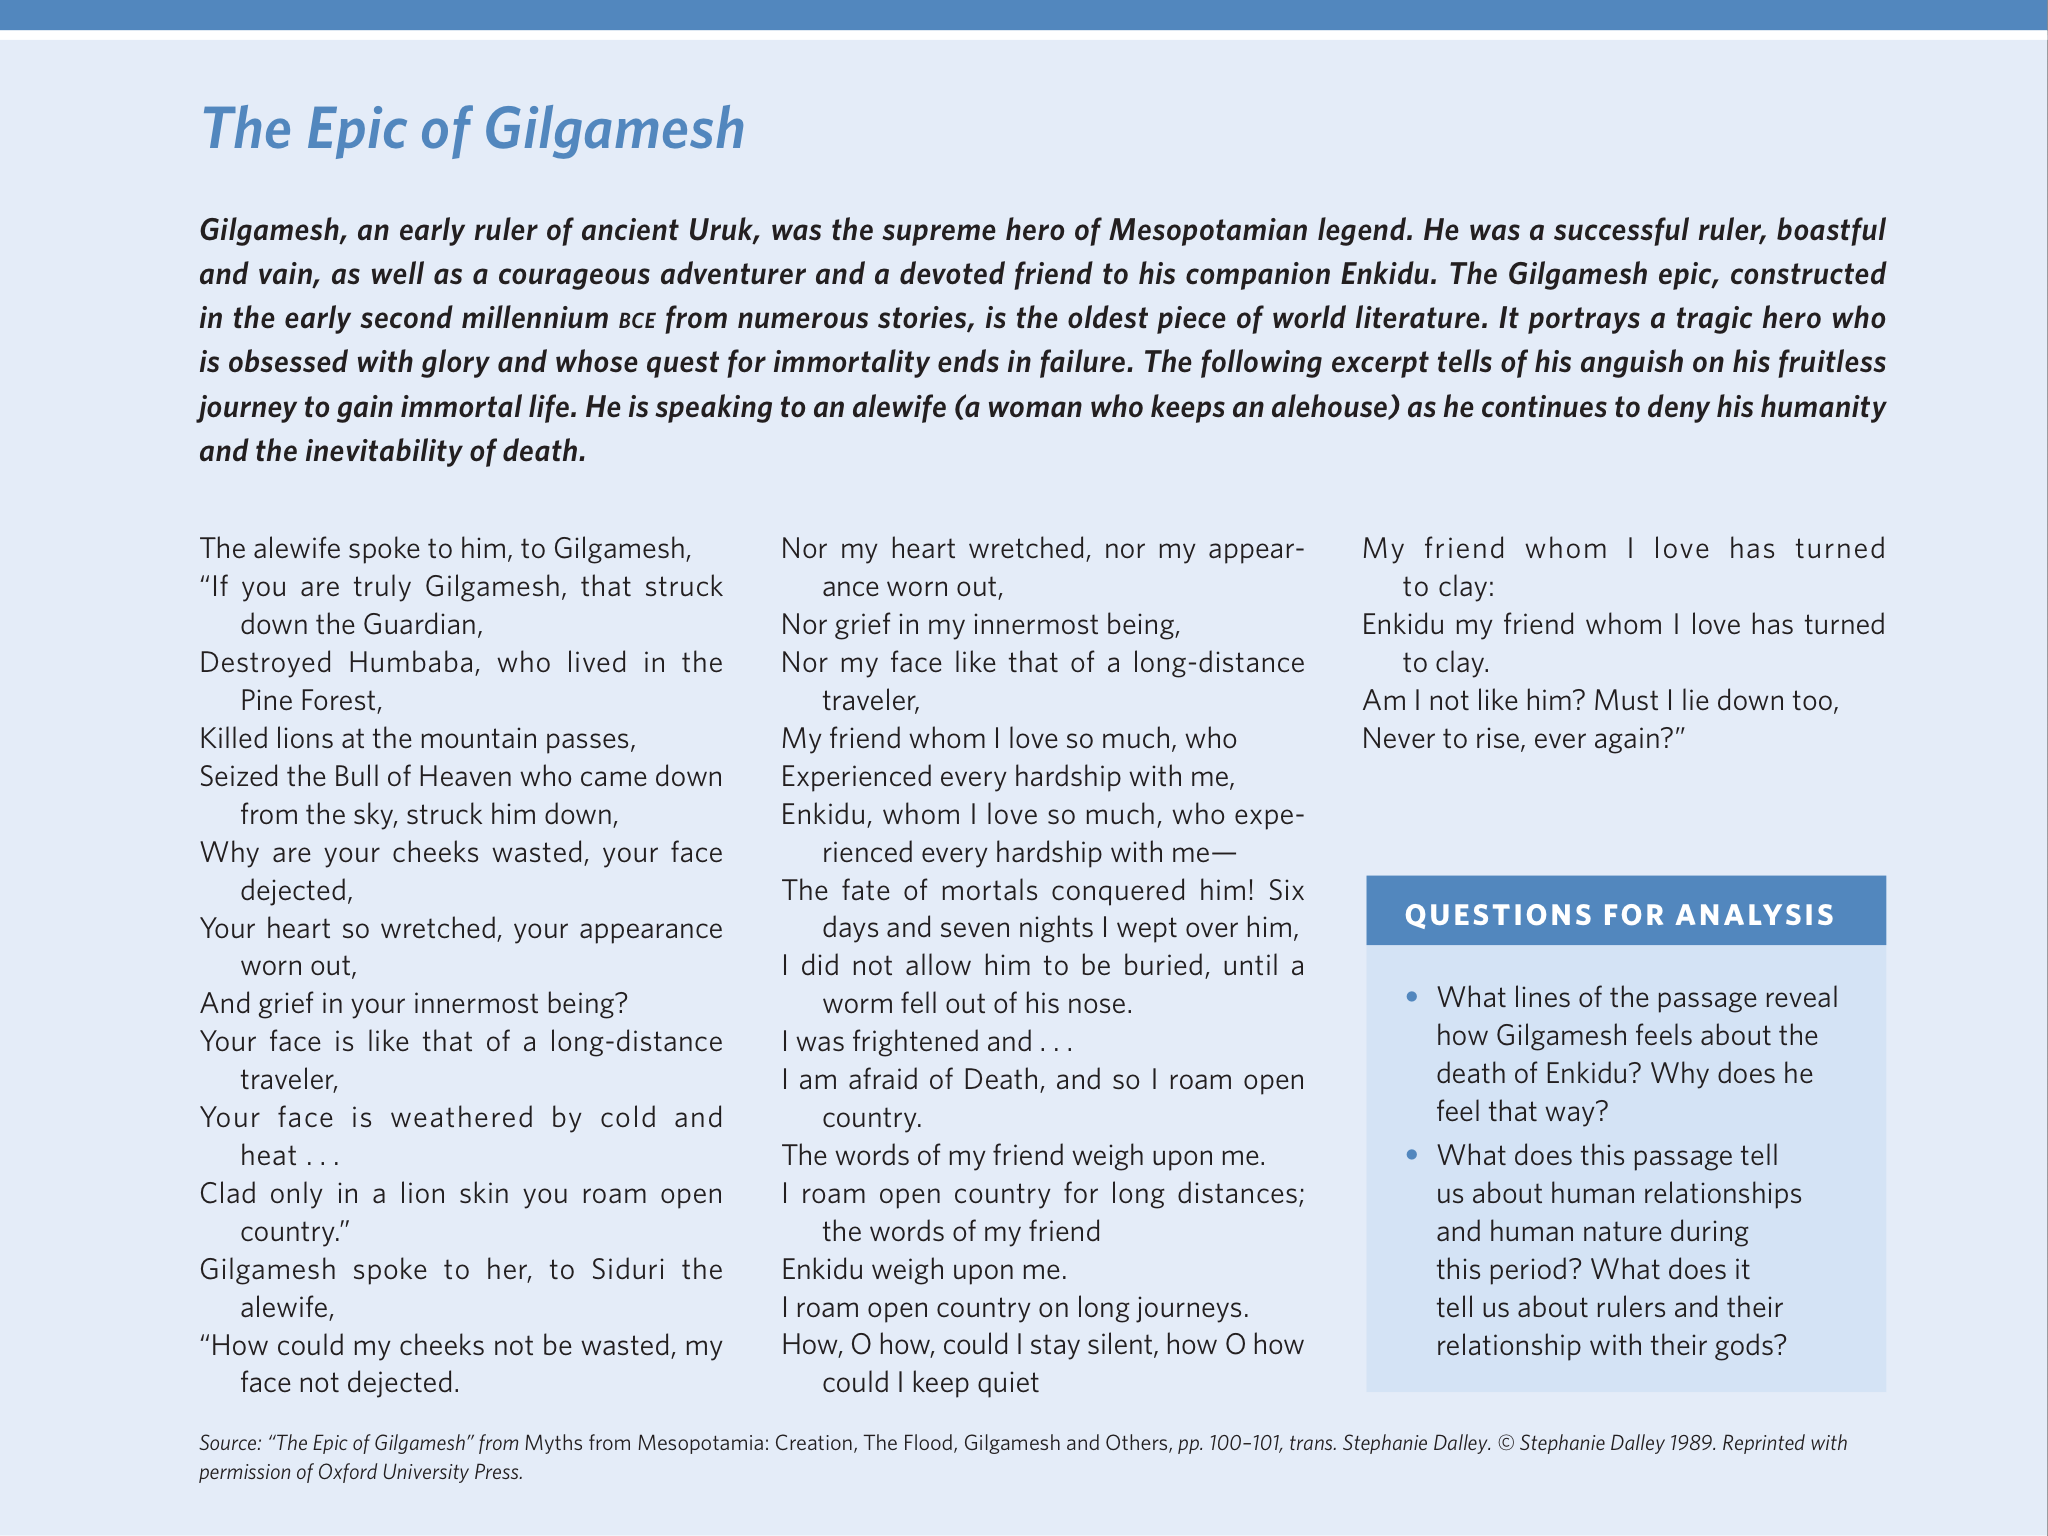 thesis about gilgamesh Gilgamesh - essays on gilgamesh / the epic of gilgamesh - essays.